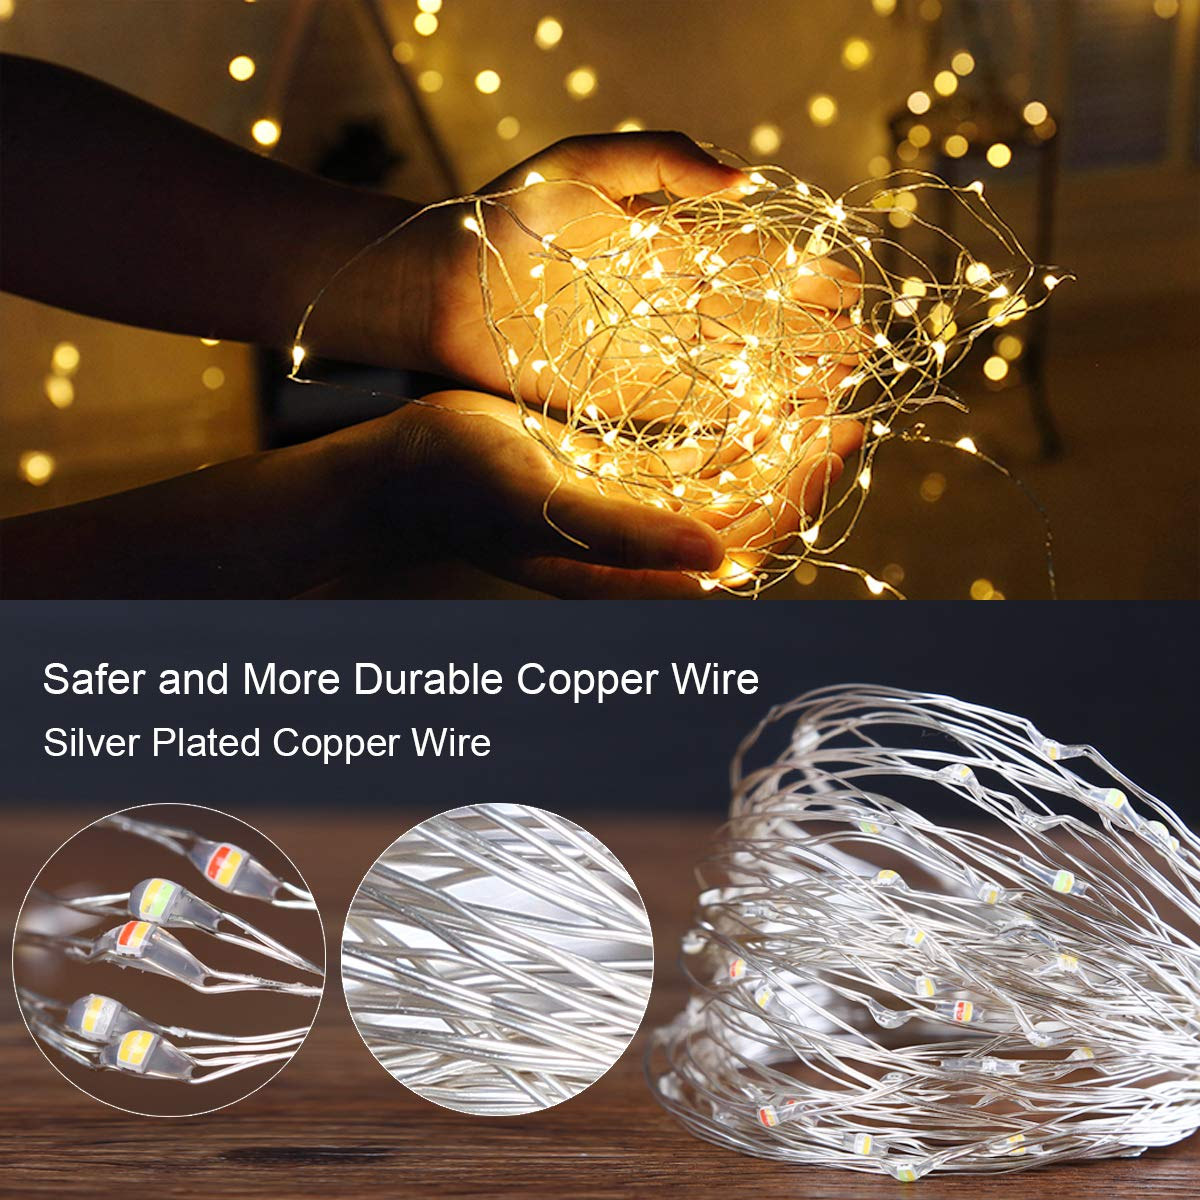 Hed5cd4d6a3a94b028000eca64fcafe16T - Led Fairy Lights Copper Wire String 1/2/5/10M Holiday Outdoor Lamp Garland Luces For Christmas Tree Wedding Party Decoration